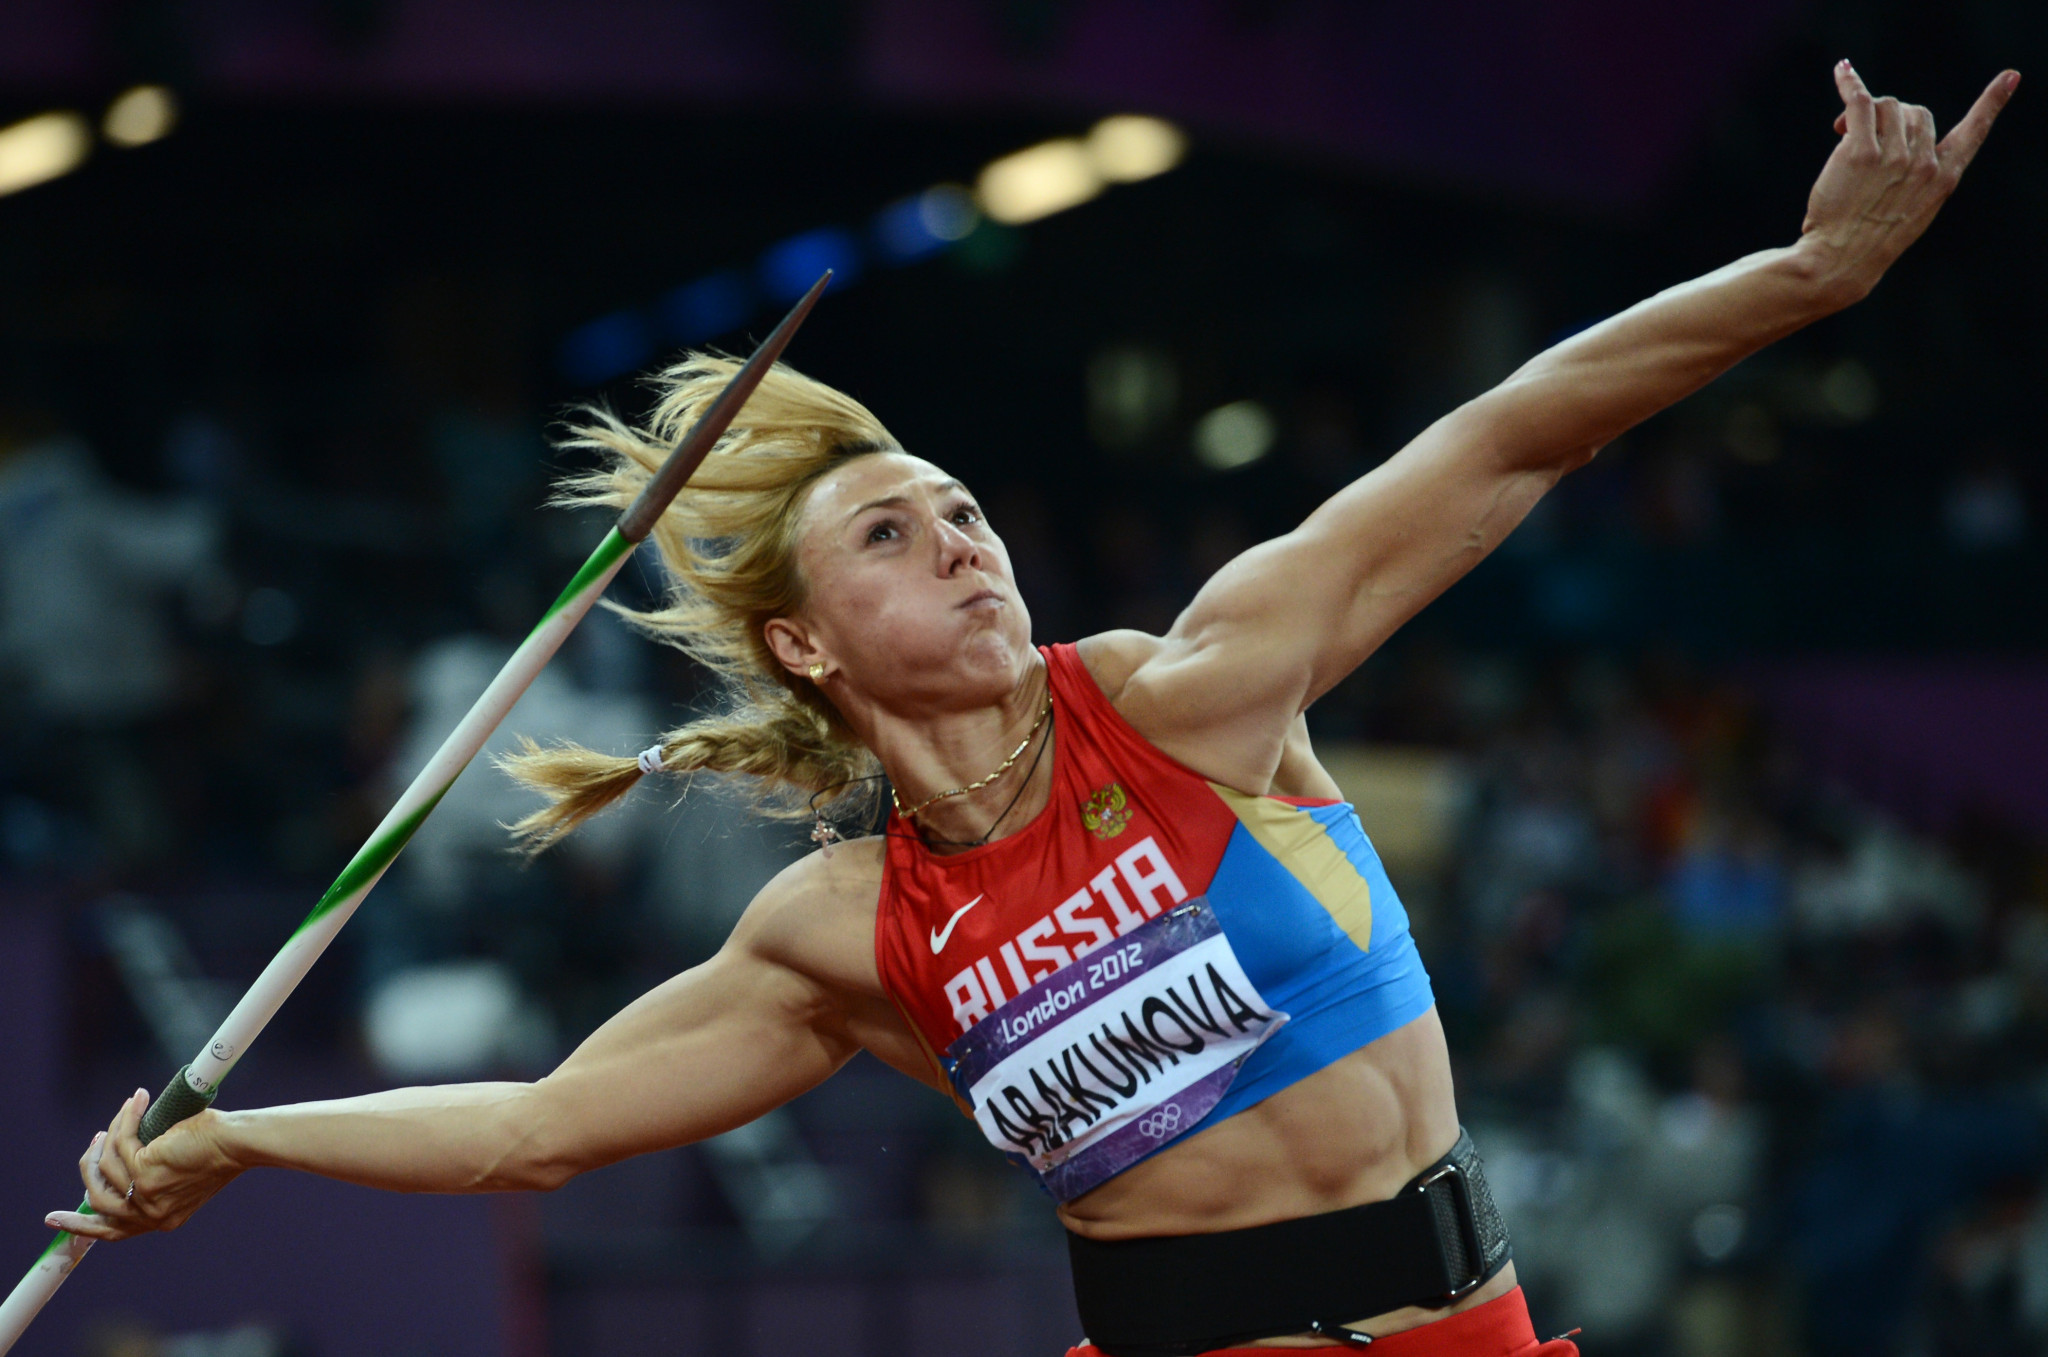 Mariya Abakumova was one of the athletes to be stripped of a London 2012 medal following a positive in the initial retests ©Getty Images